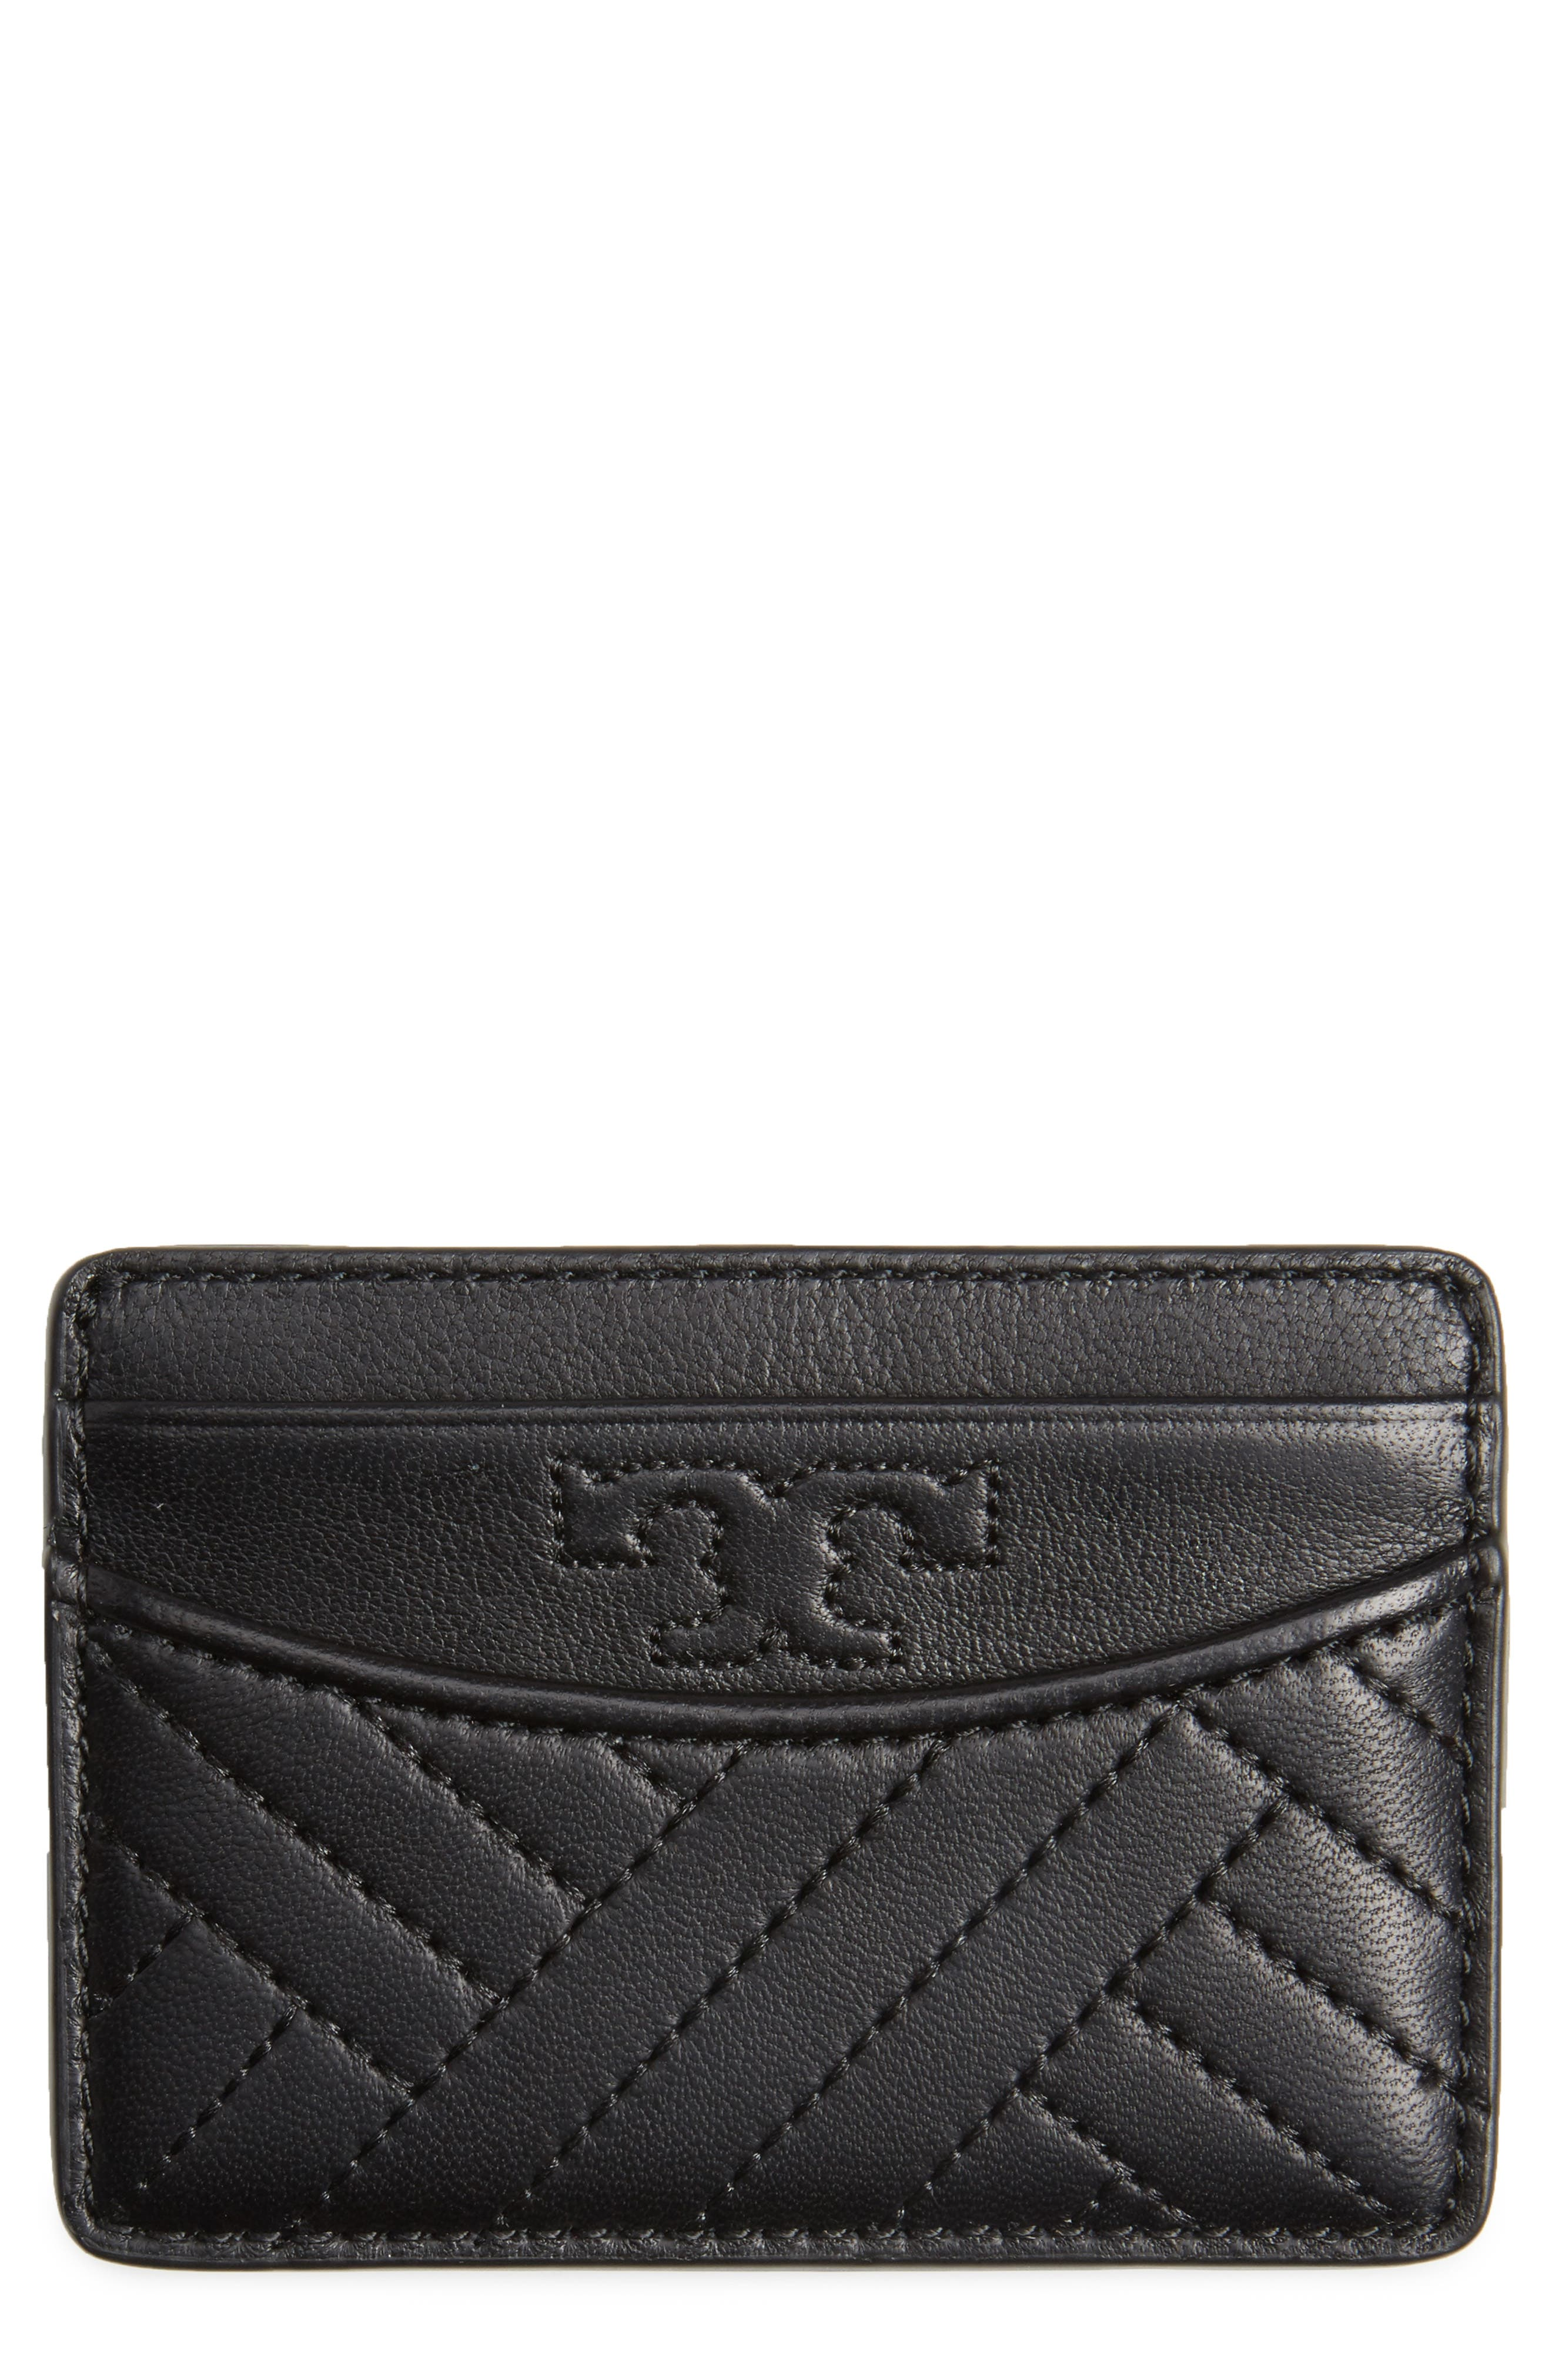 TORY BURCH Alexa Slim Leather Card Case